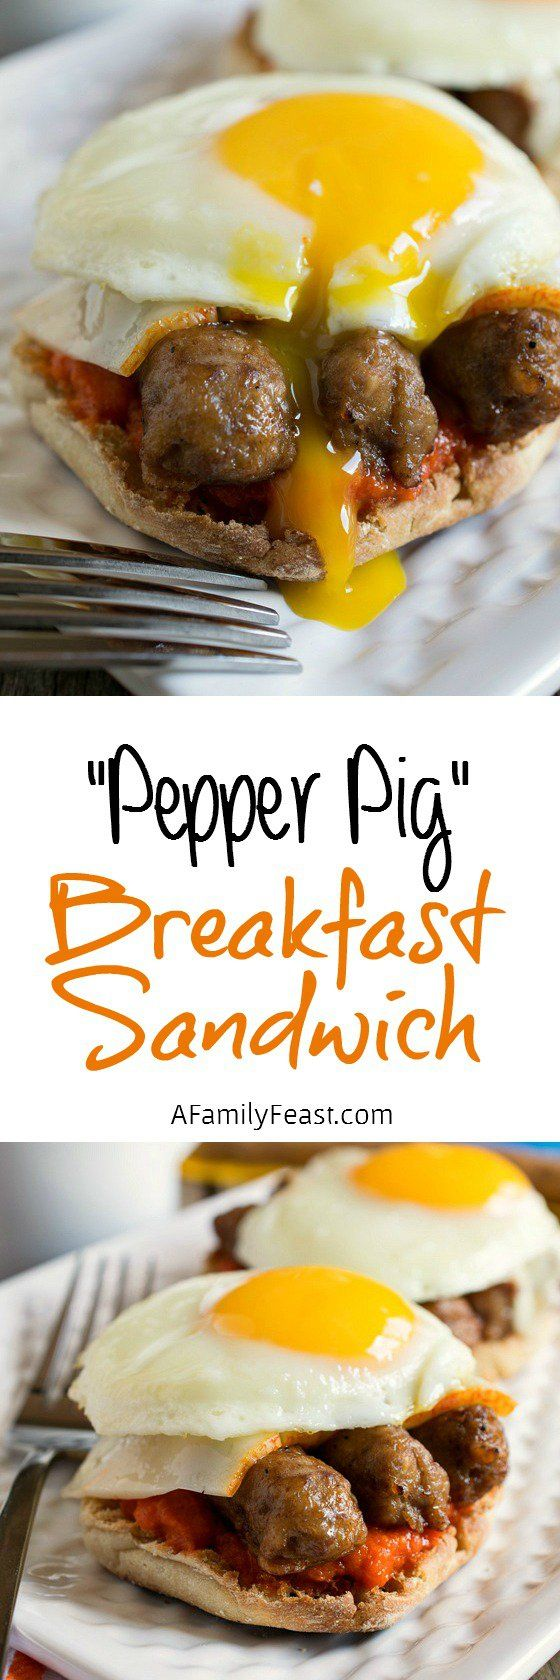 Our delicious Pepper Pig Breakfast Sandwich has sausage links on an English muffin smothered in a red pepper sauce with cheese. #ad @jvillesausage #SausageSunday